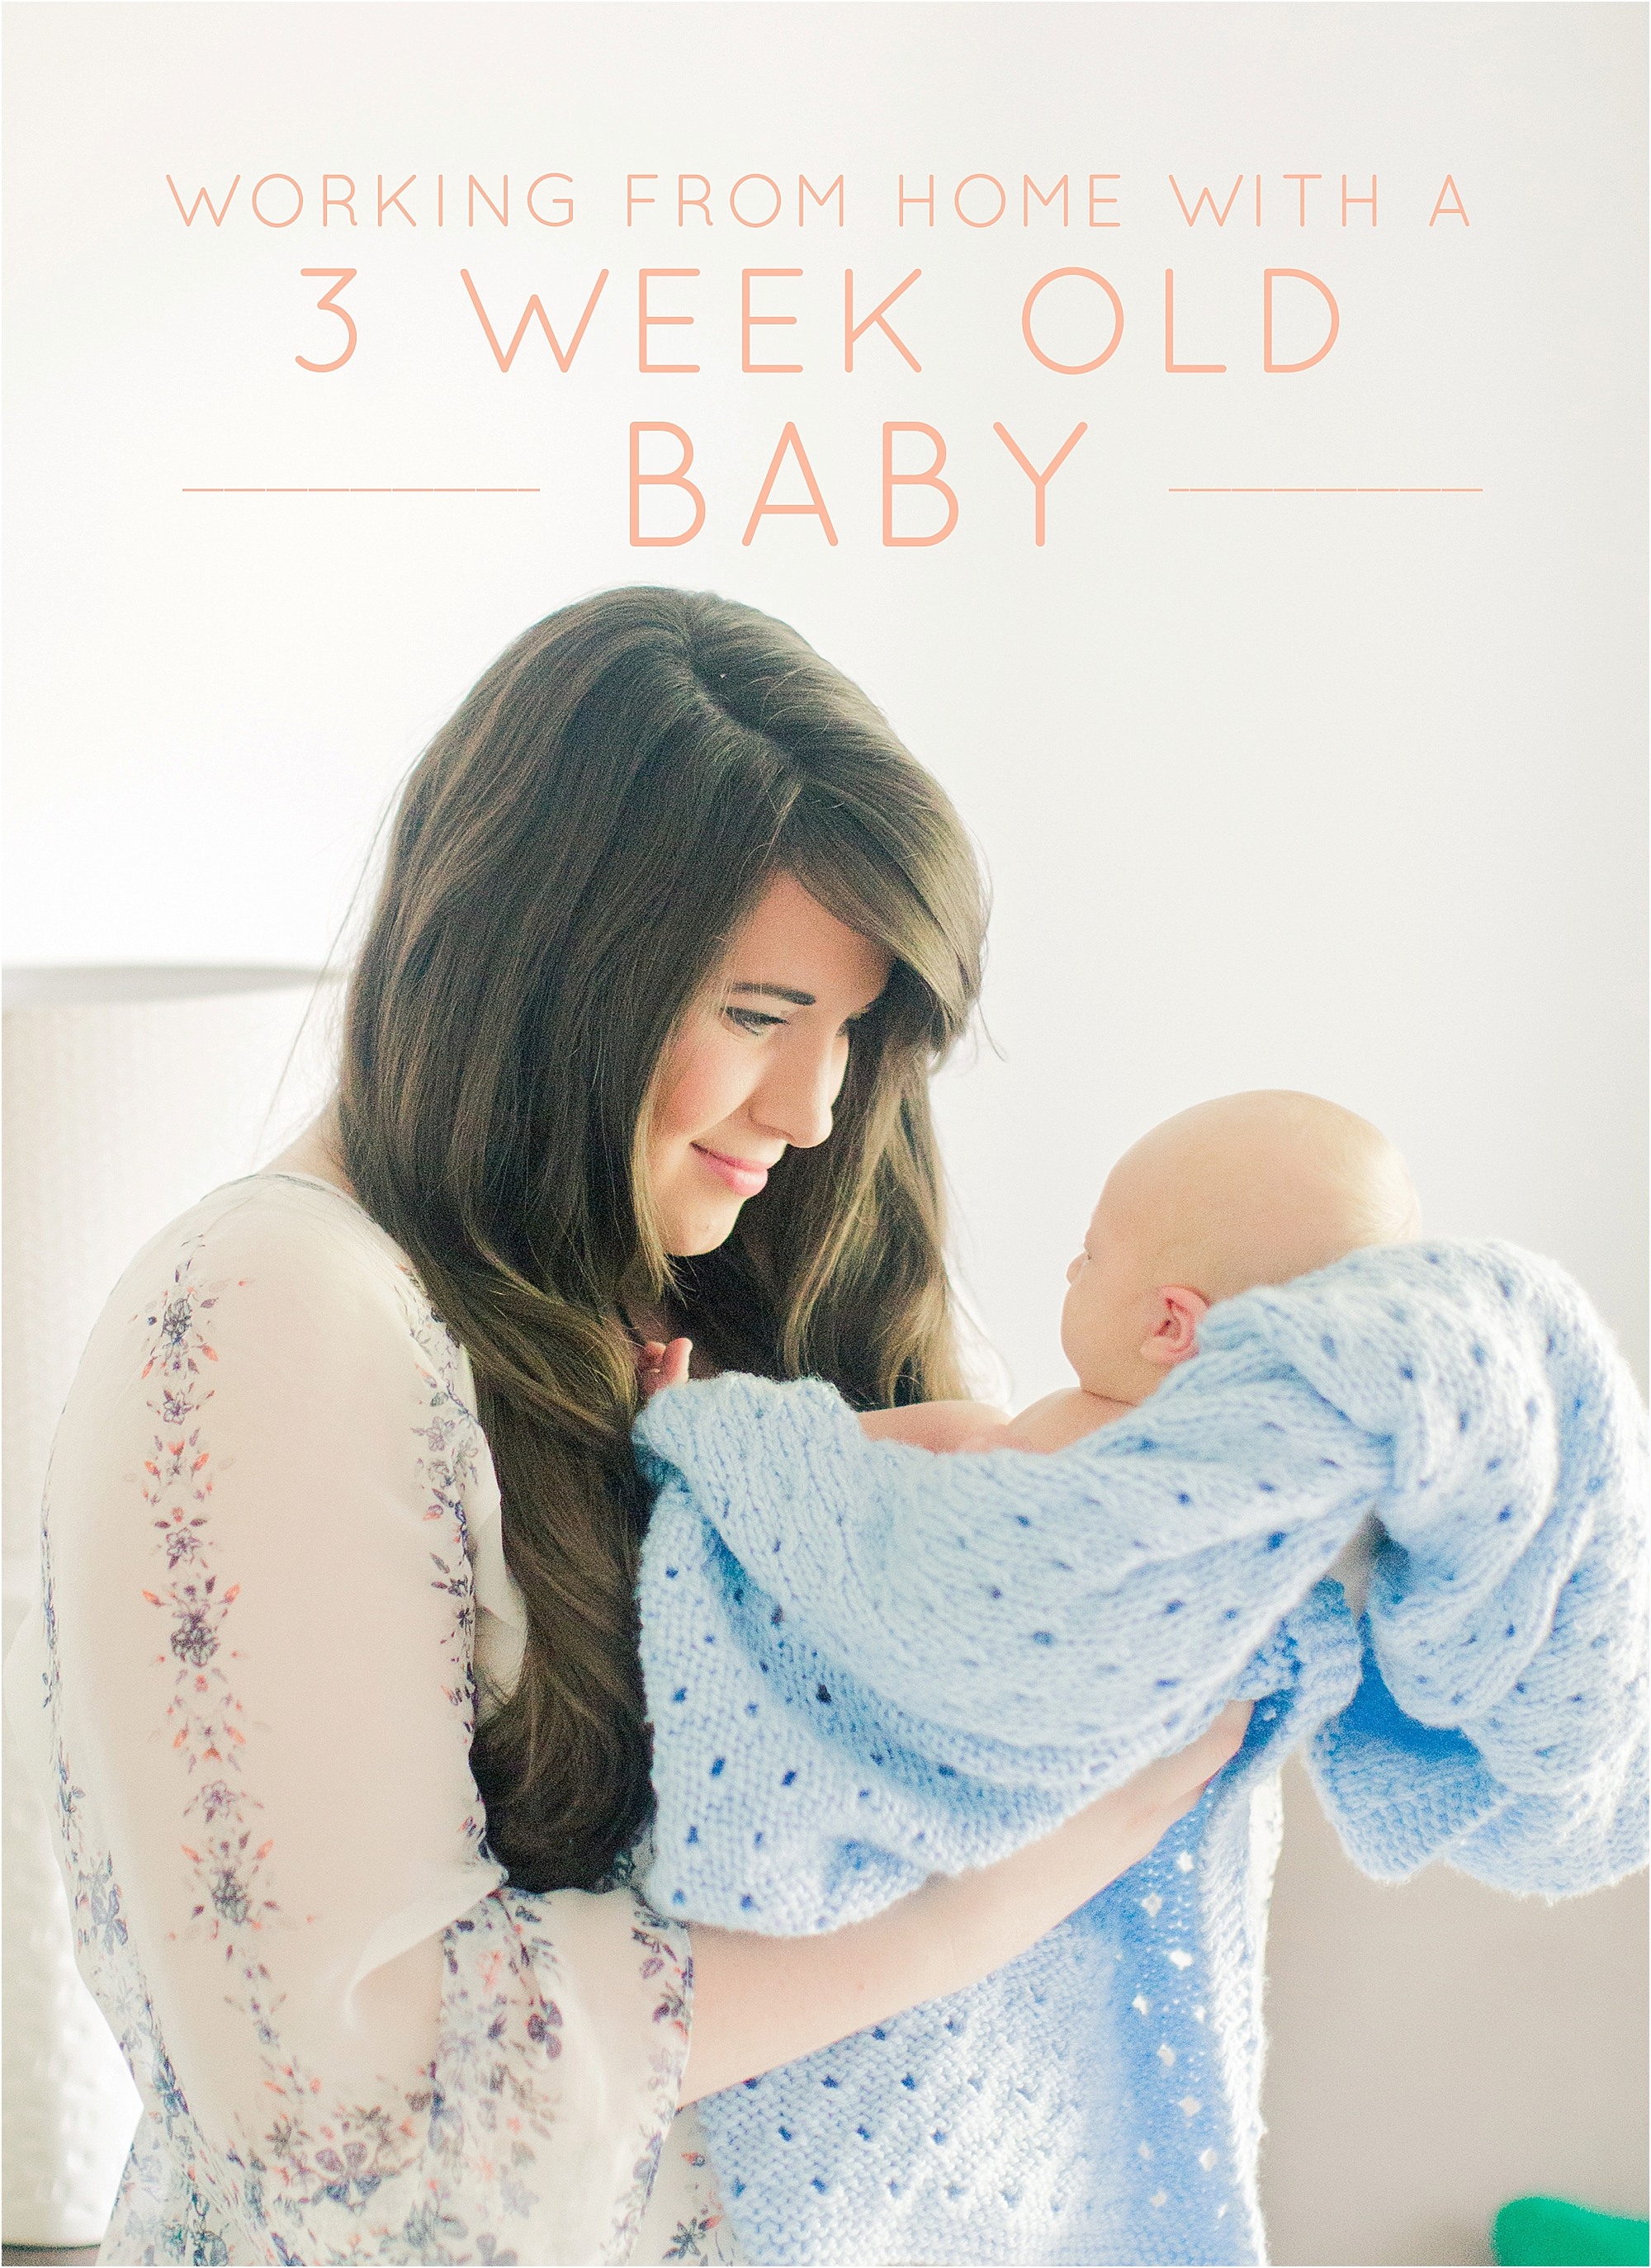 Working From Home with a 3 Week Old Baby - The Jordan Brittley Blog